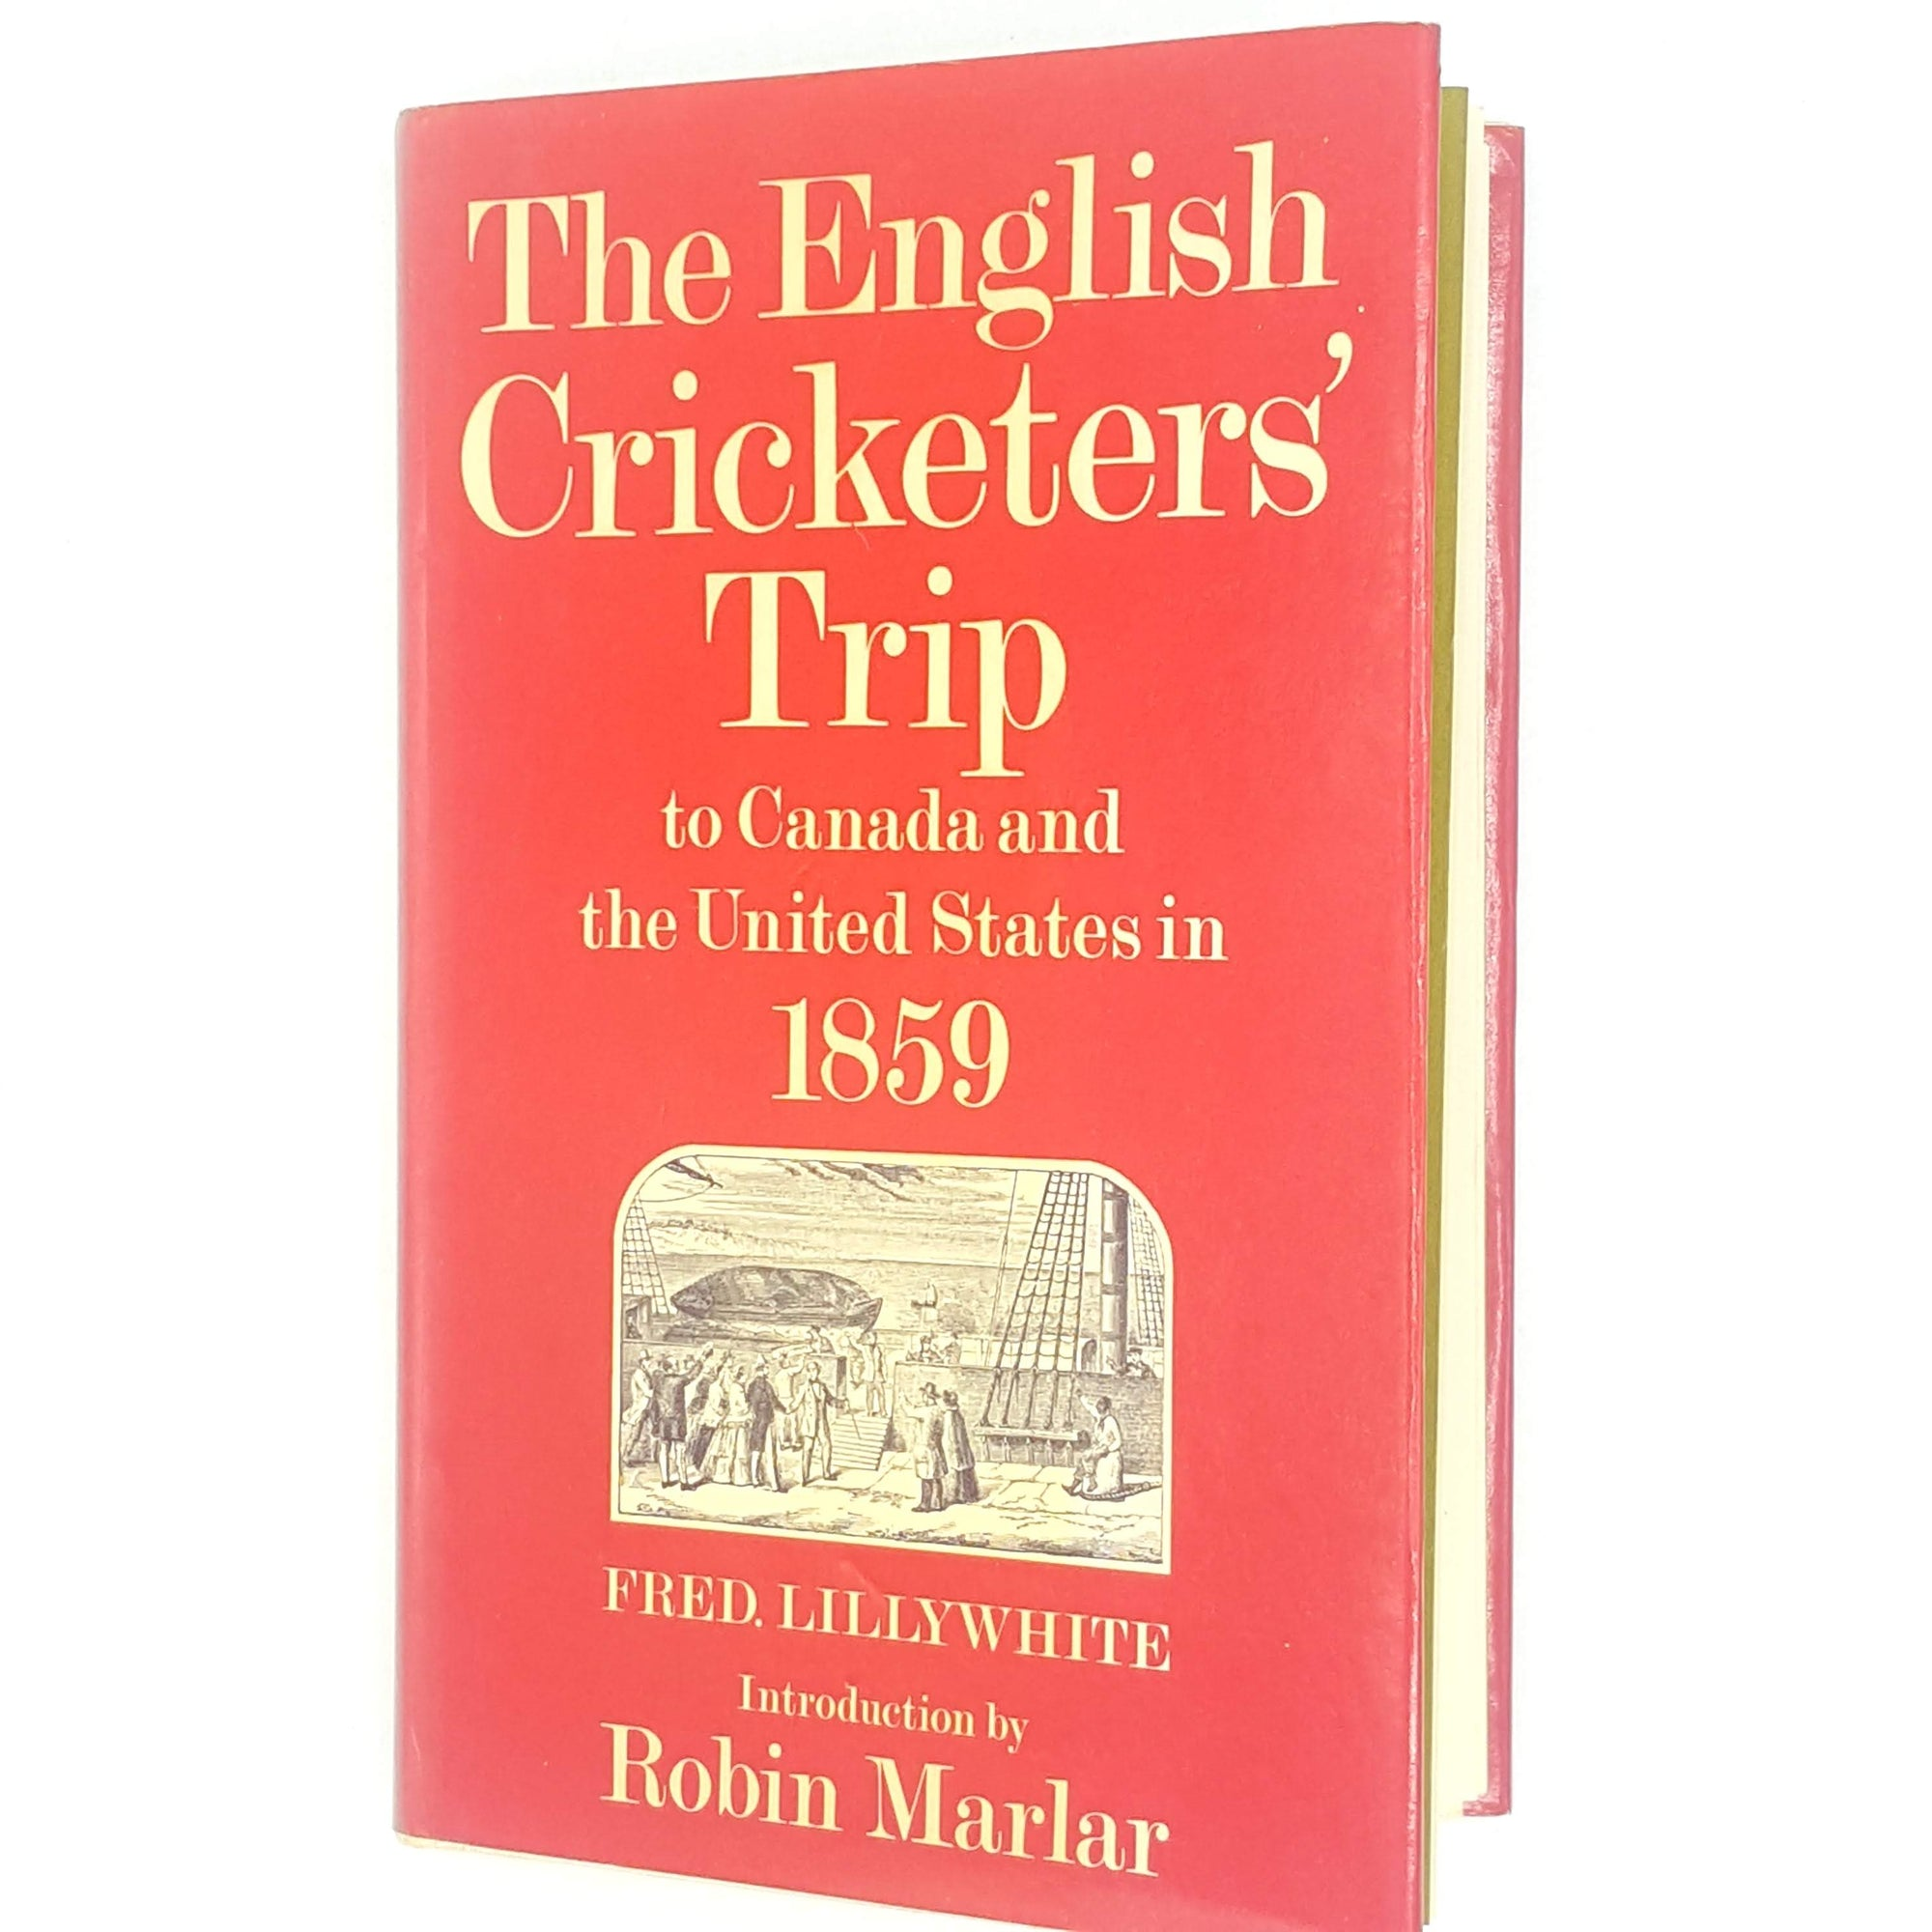 The English Cricketers' Trip to Canada and the United States in 1859 by Fred Lillywhite